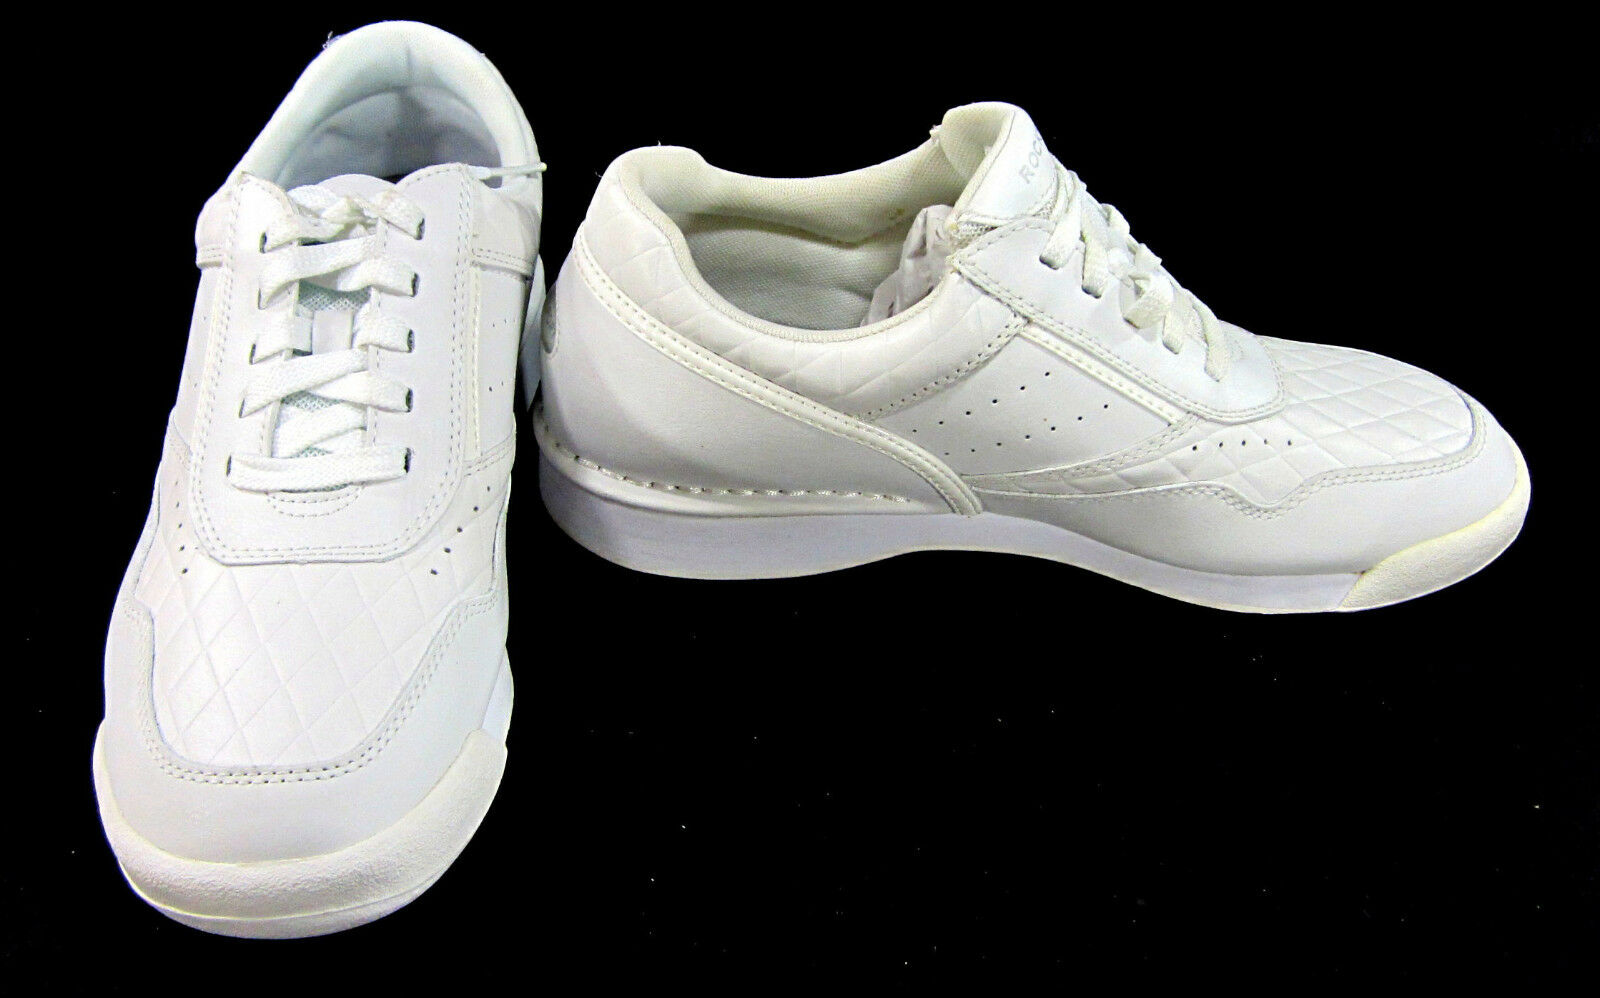 Rockport Shoes Athletic Lo Perforated Leather New White Sneakers Size 9.5 Scarpe classiche da uomo